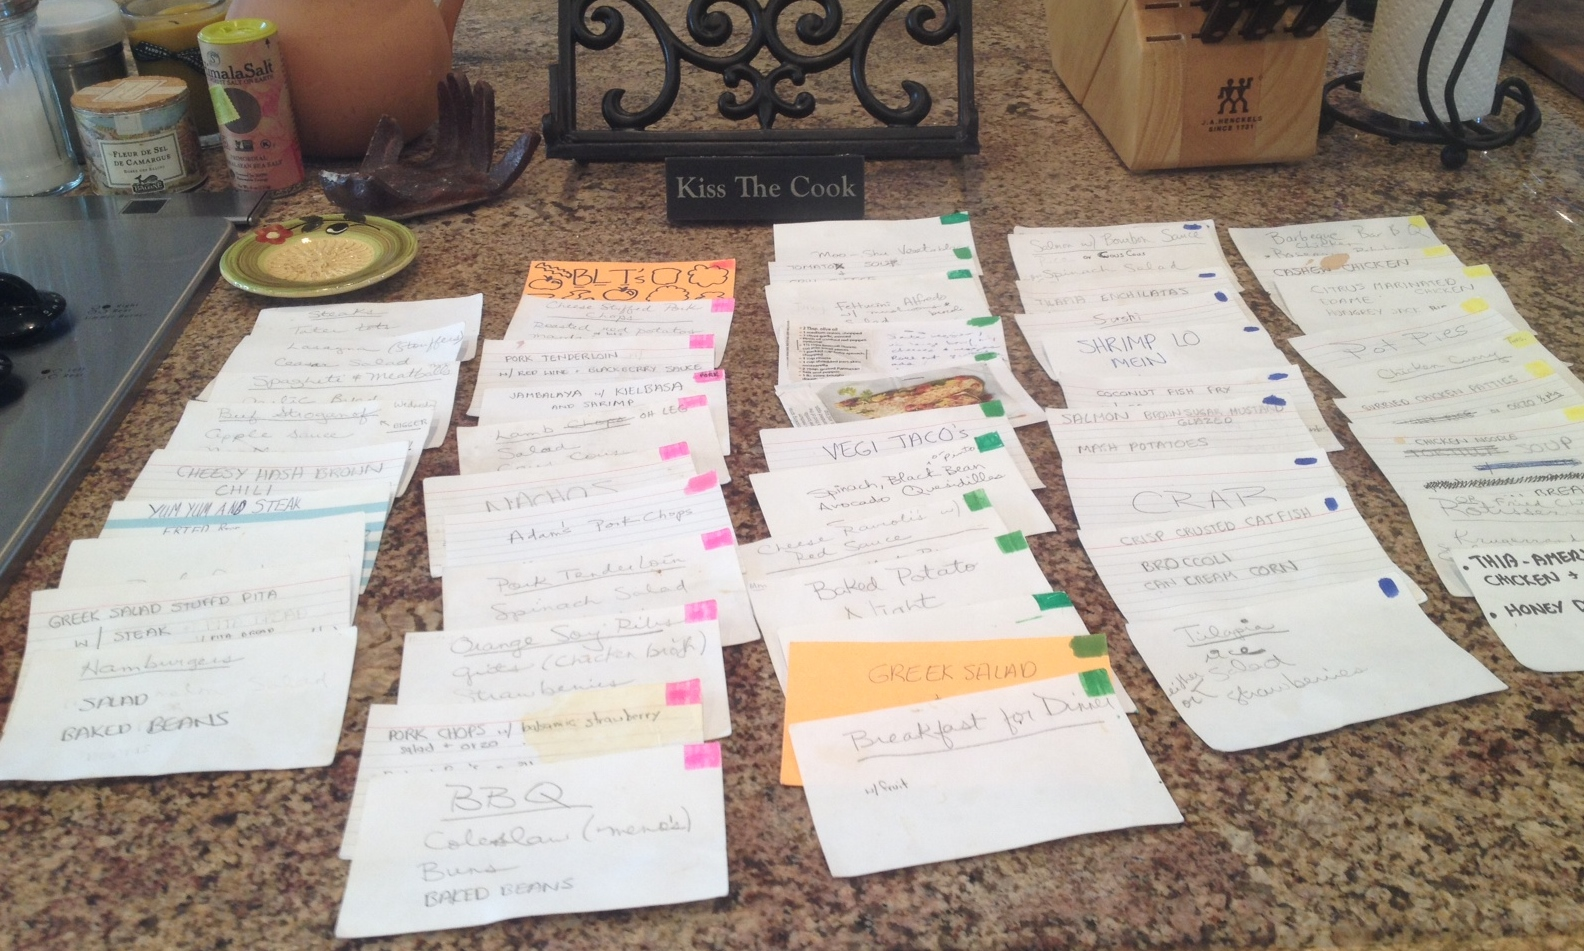 Meal Planning Made Easy with My Friend, Katherine Macon's organizer